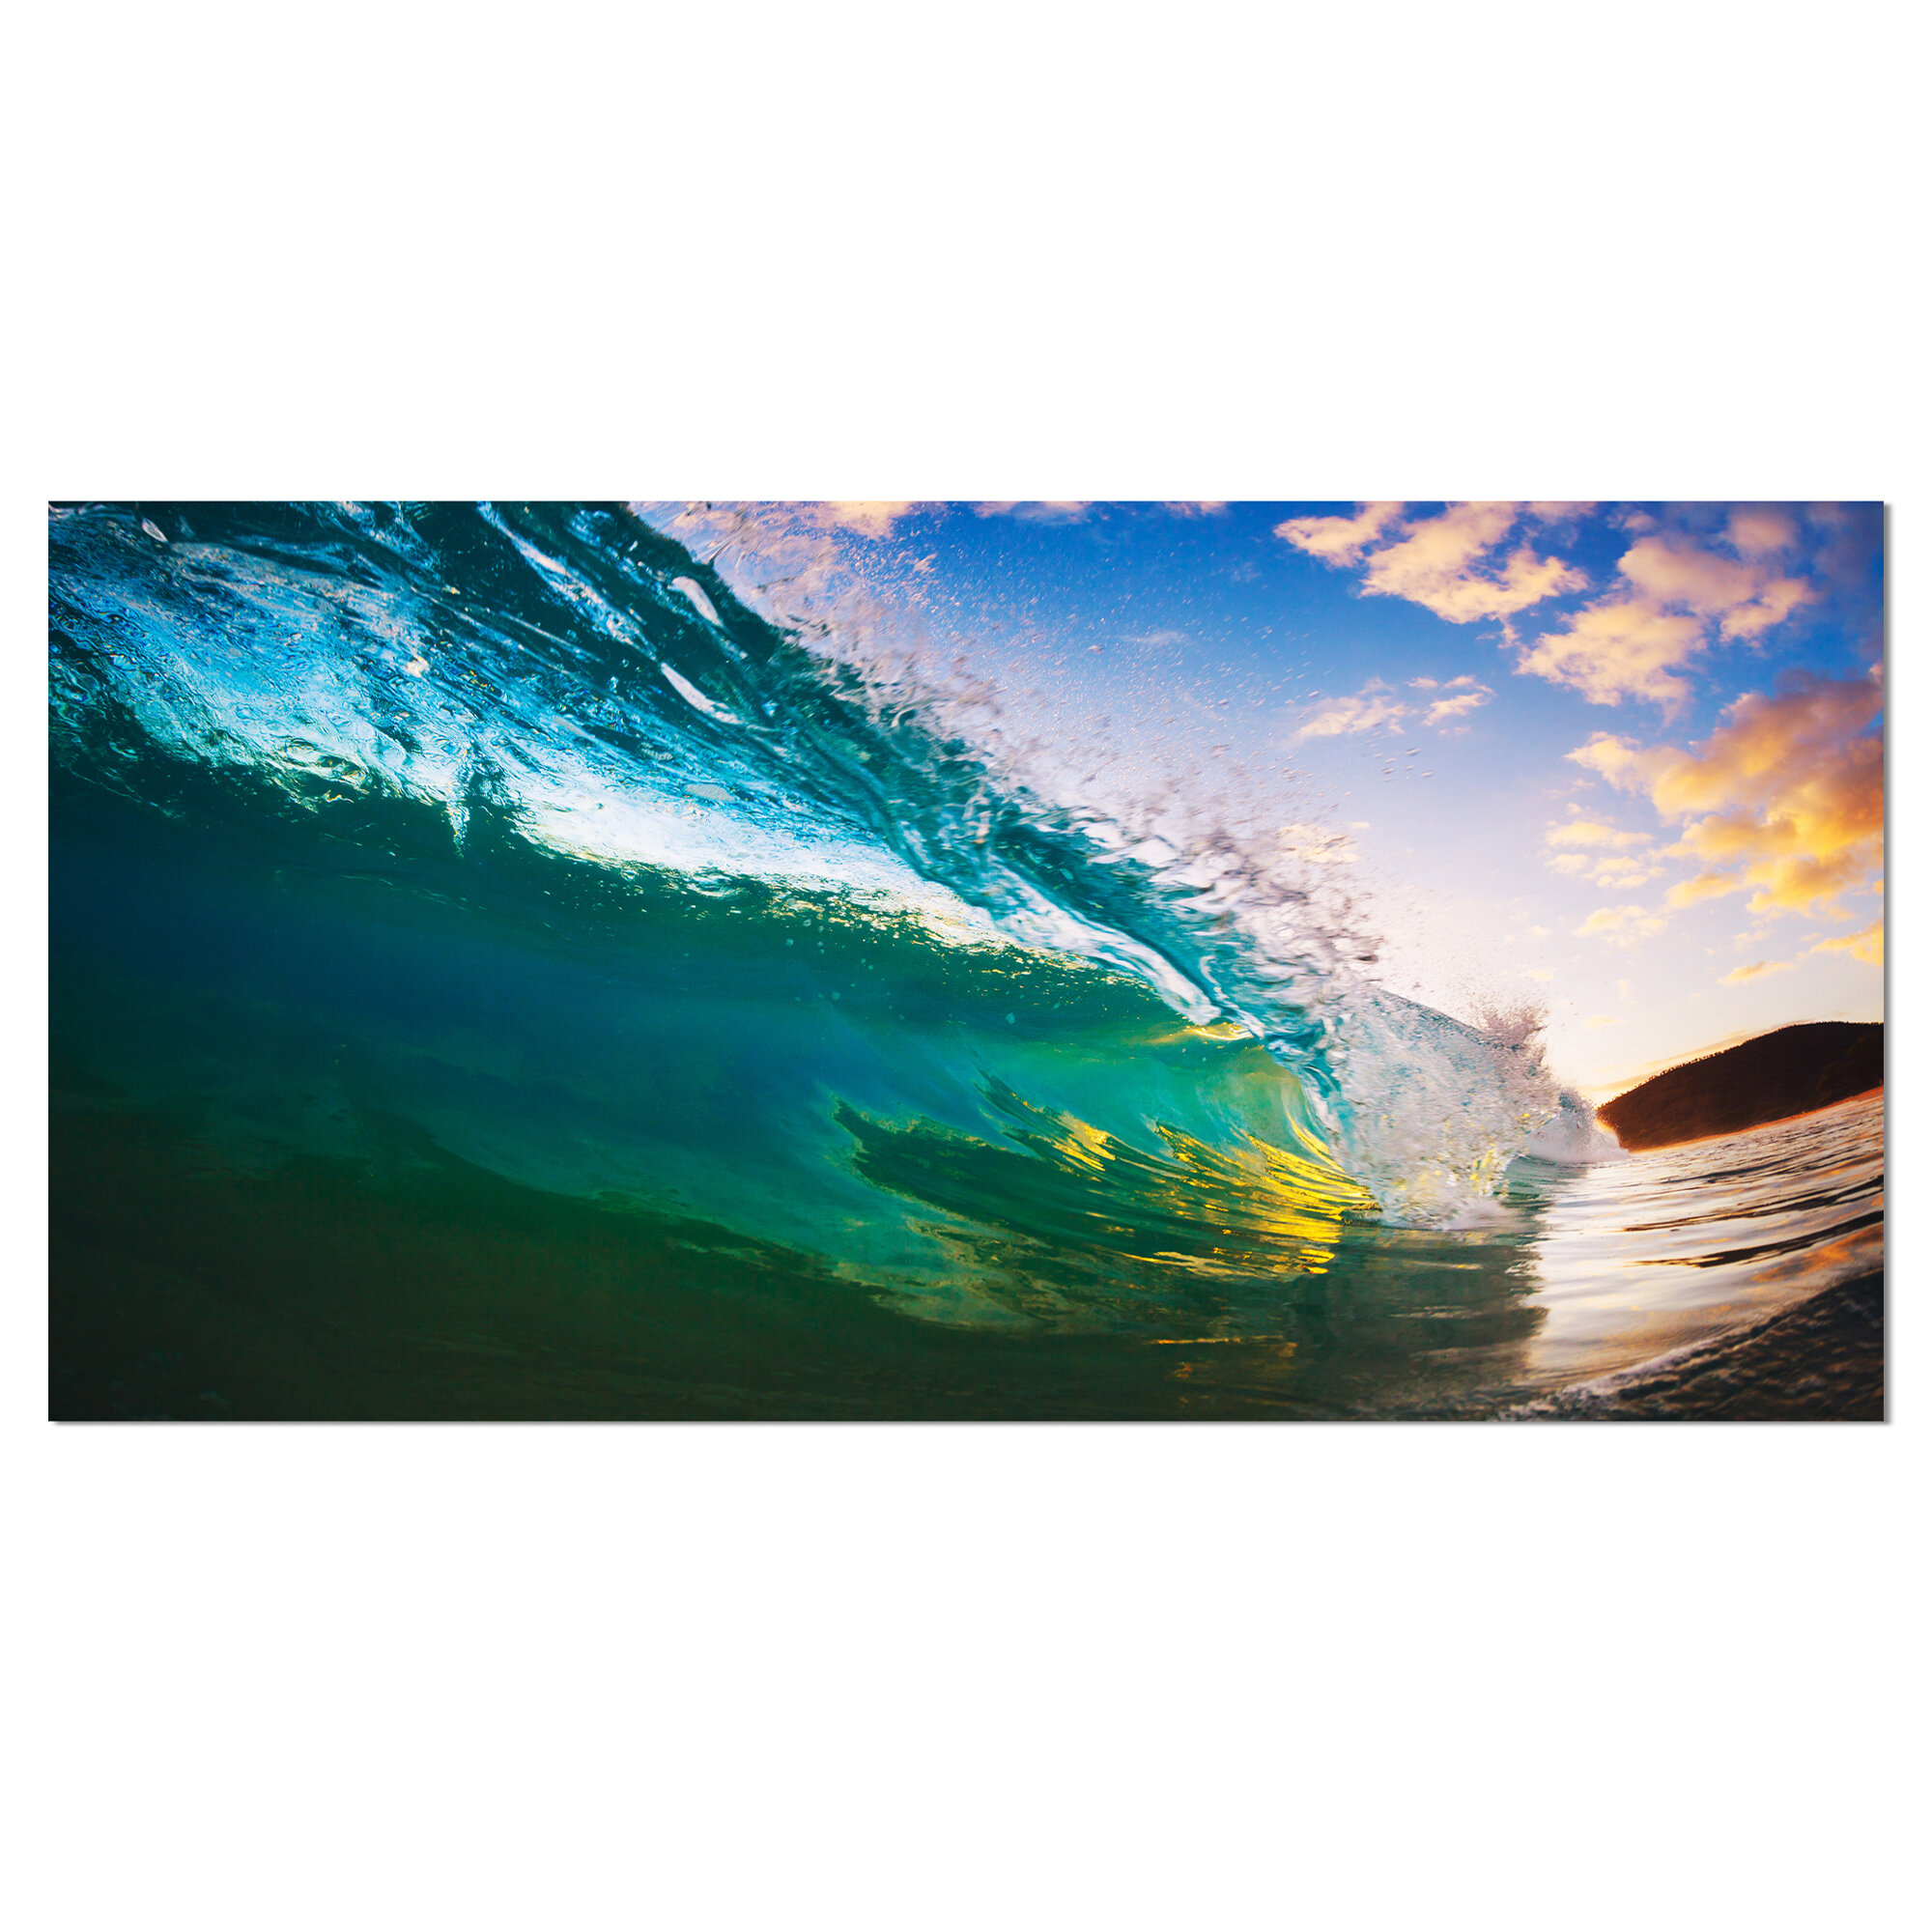 Designart Ocean Wave At Sunset Photographic Print On Wrapped Canvas Reviews Wayfair